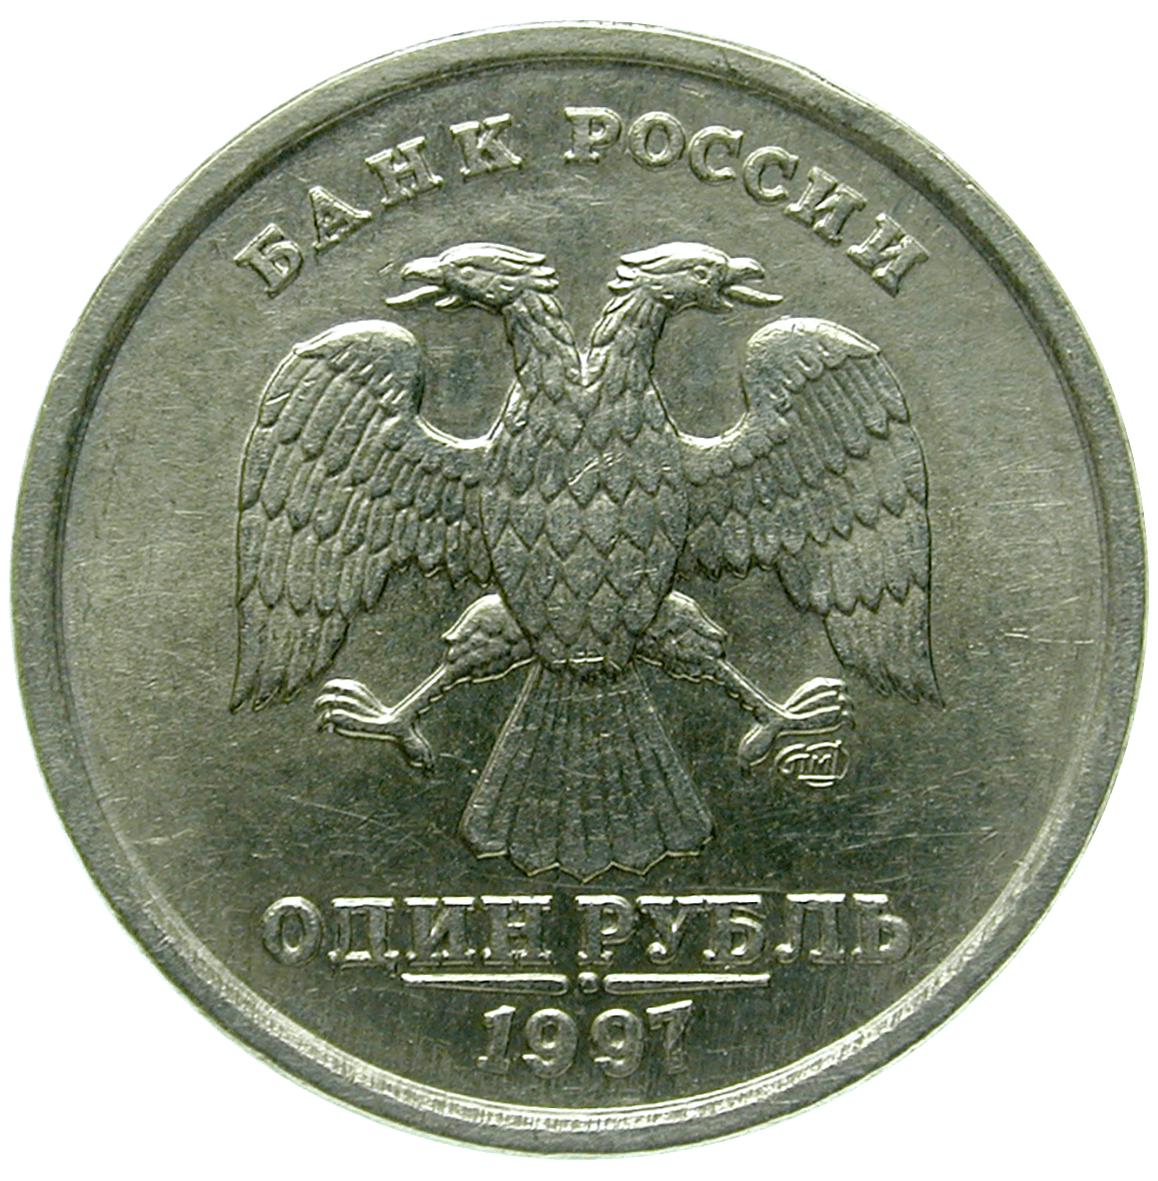 Russian Federation, 1 Ruble 1997 (obverse)